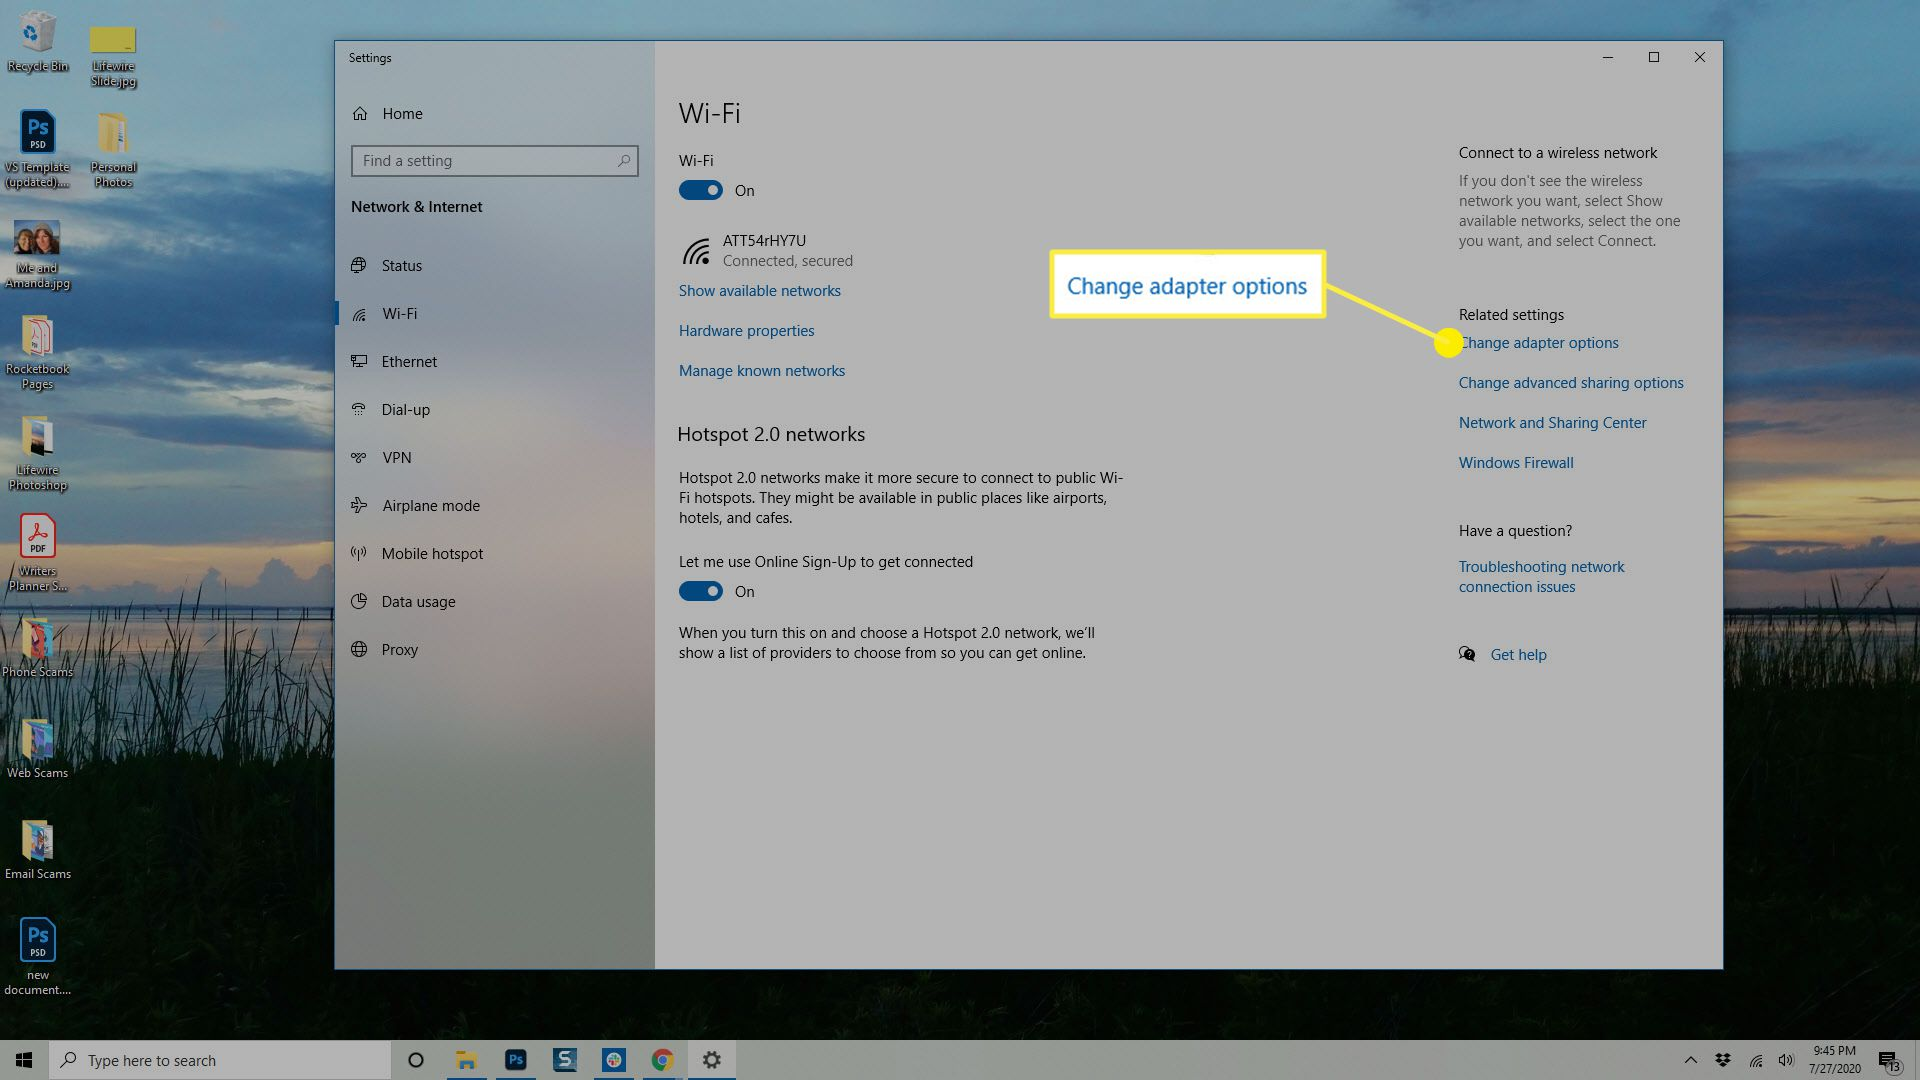 The Change Adapter options in Windows.